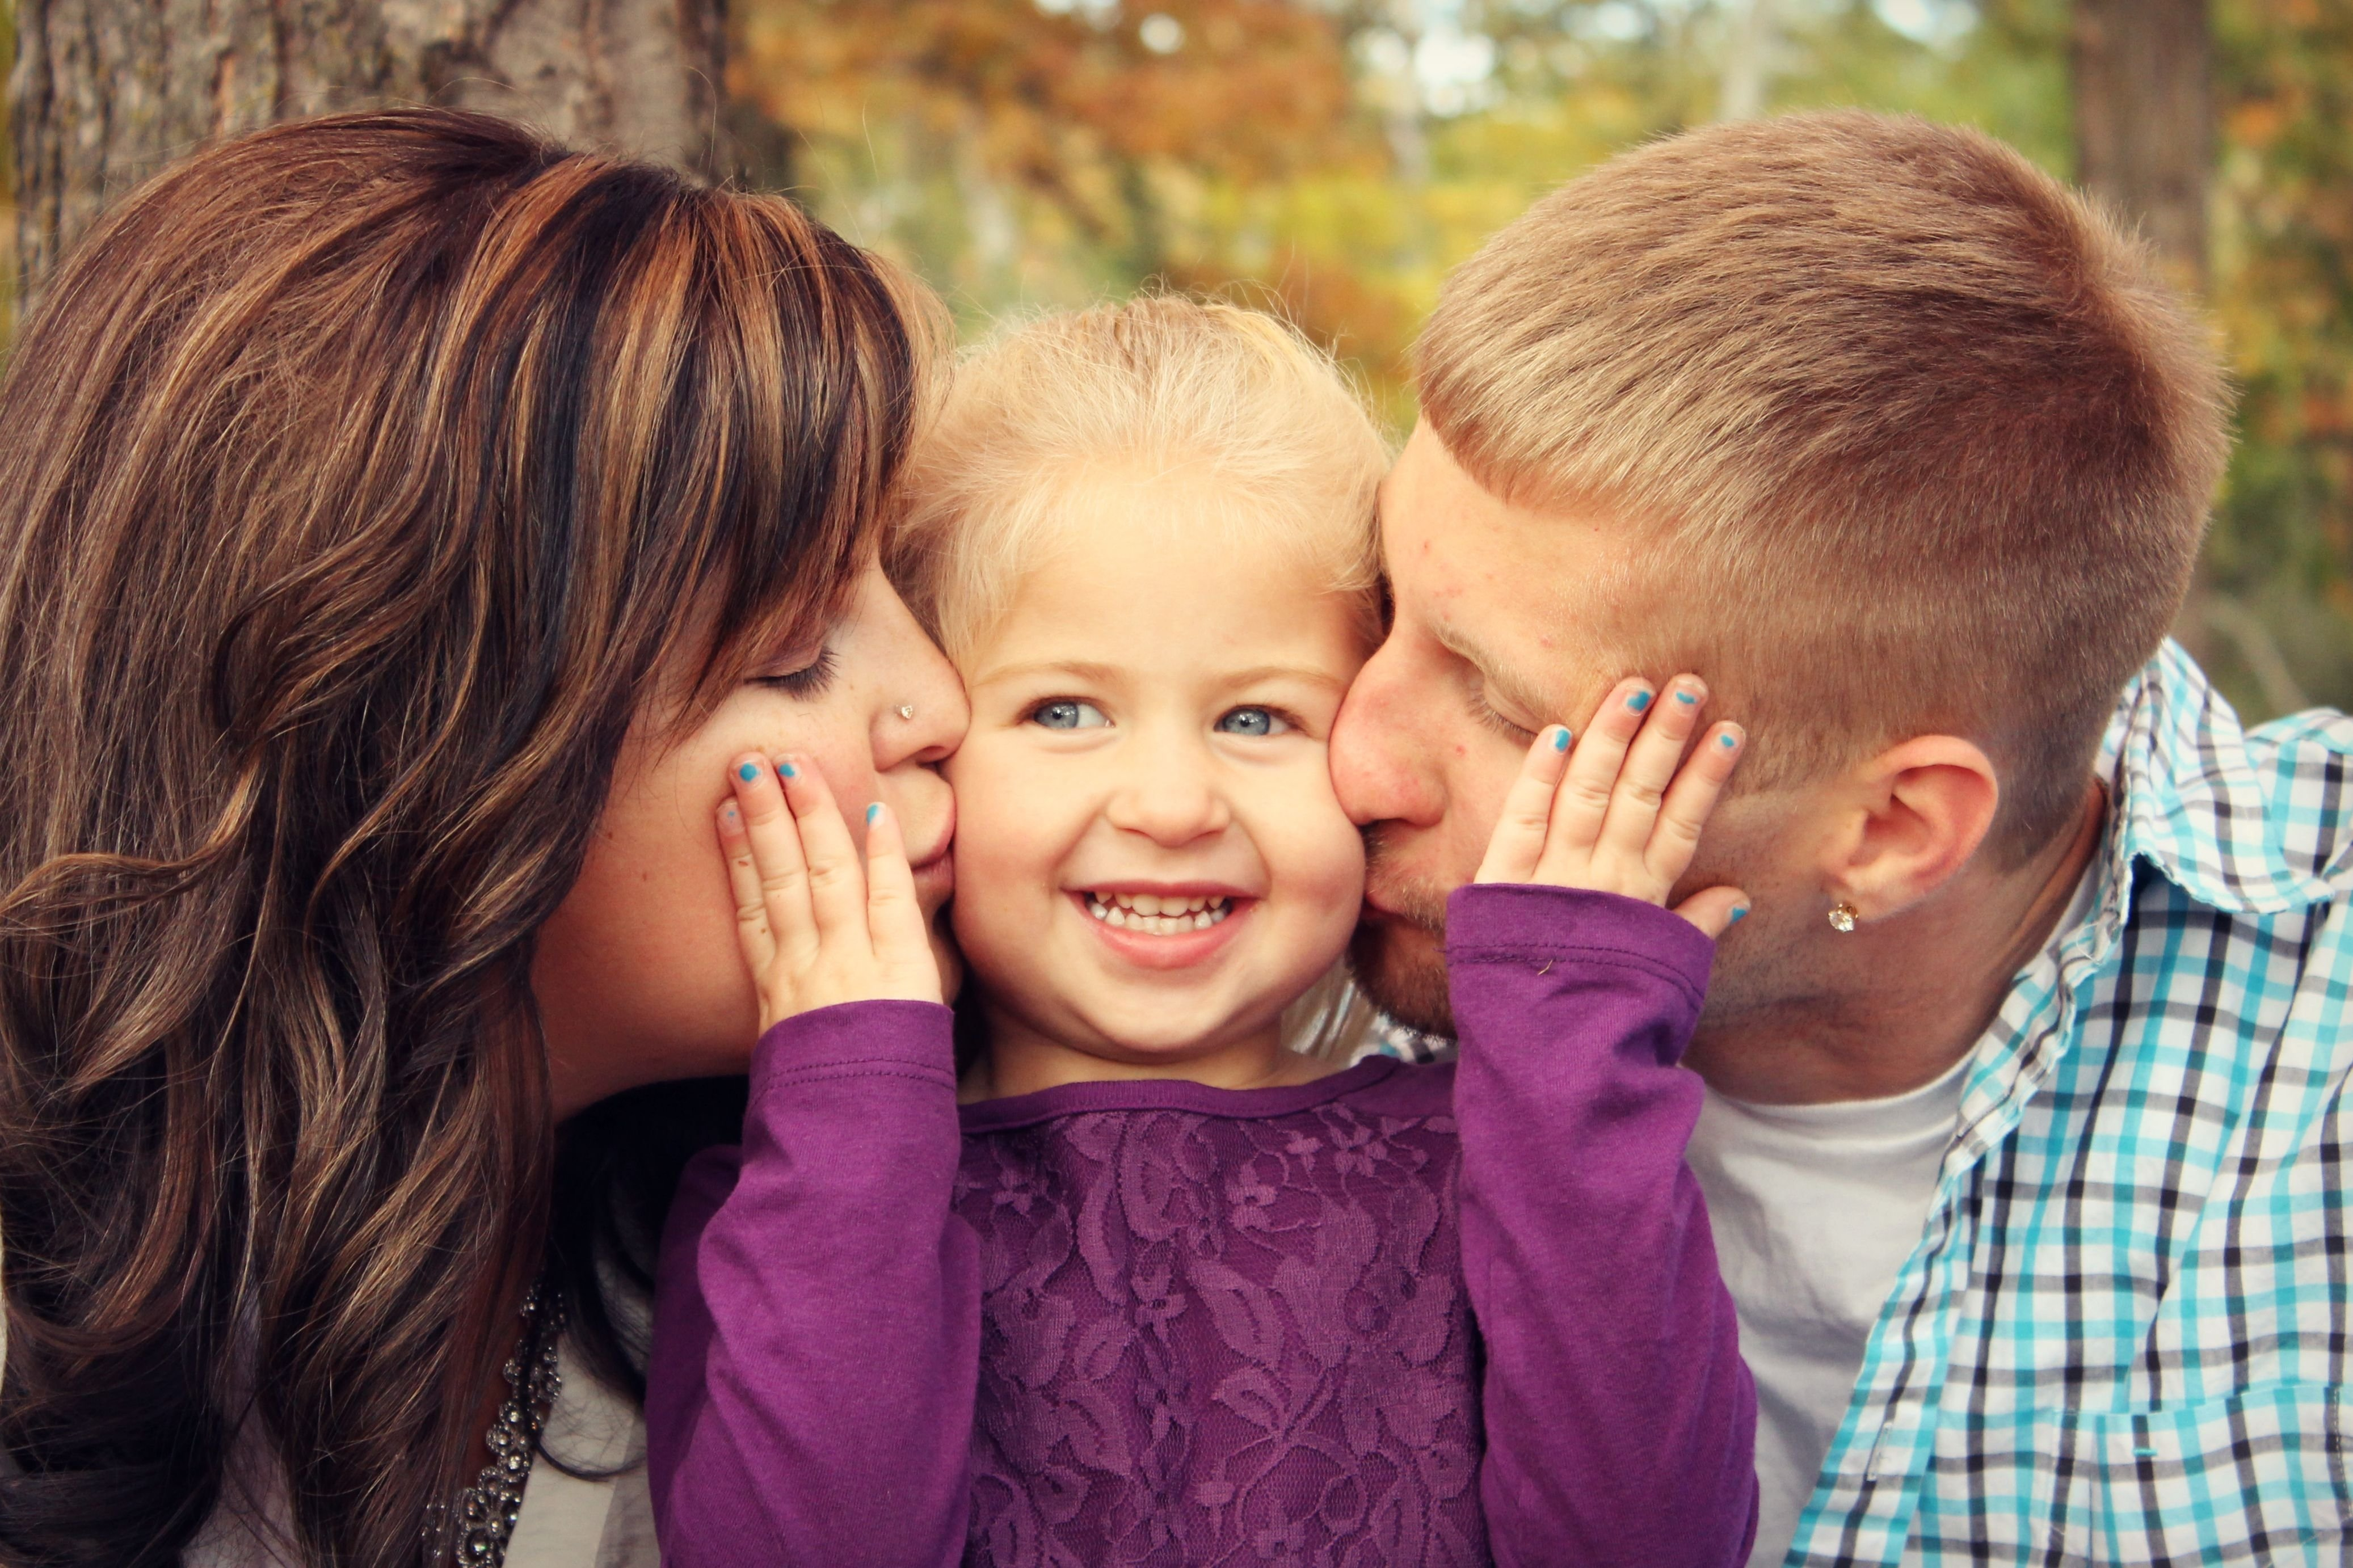 10 Awesome Family Of 3 Photo Ideas great family photo idea photography photos family of 3 family 2020